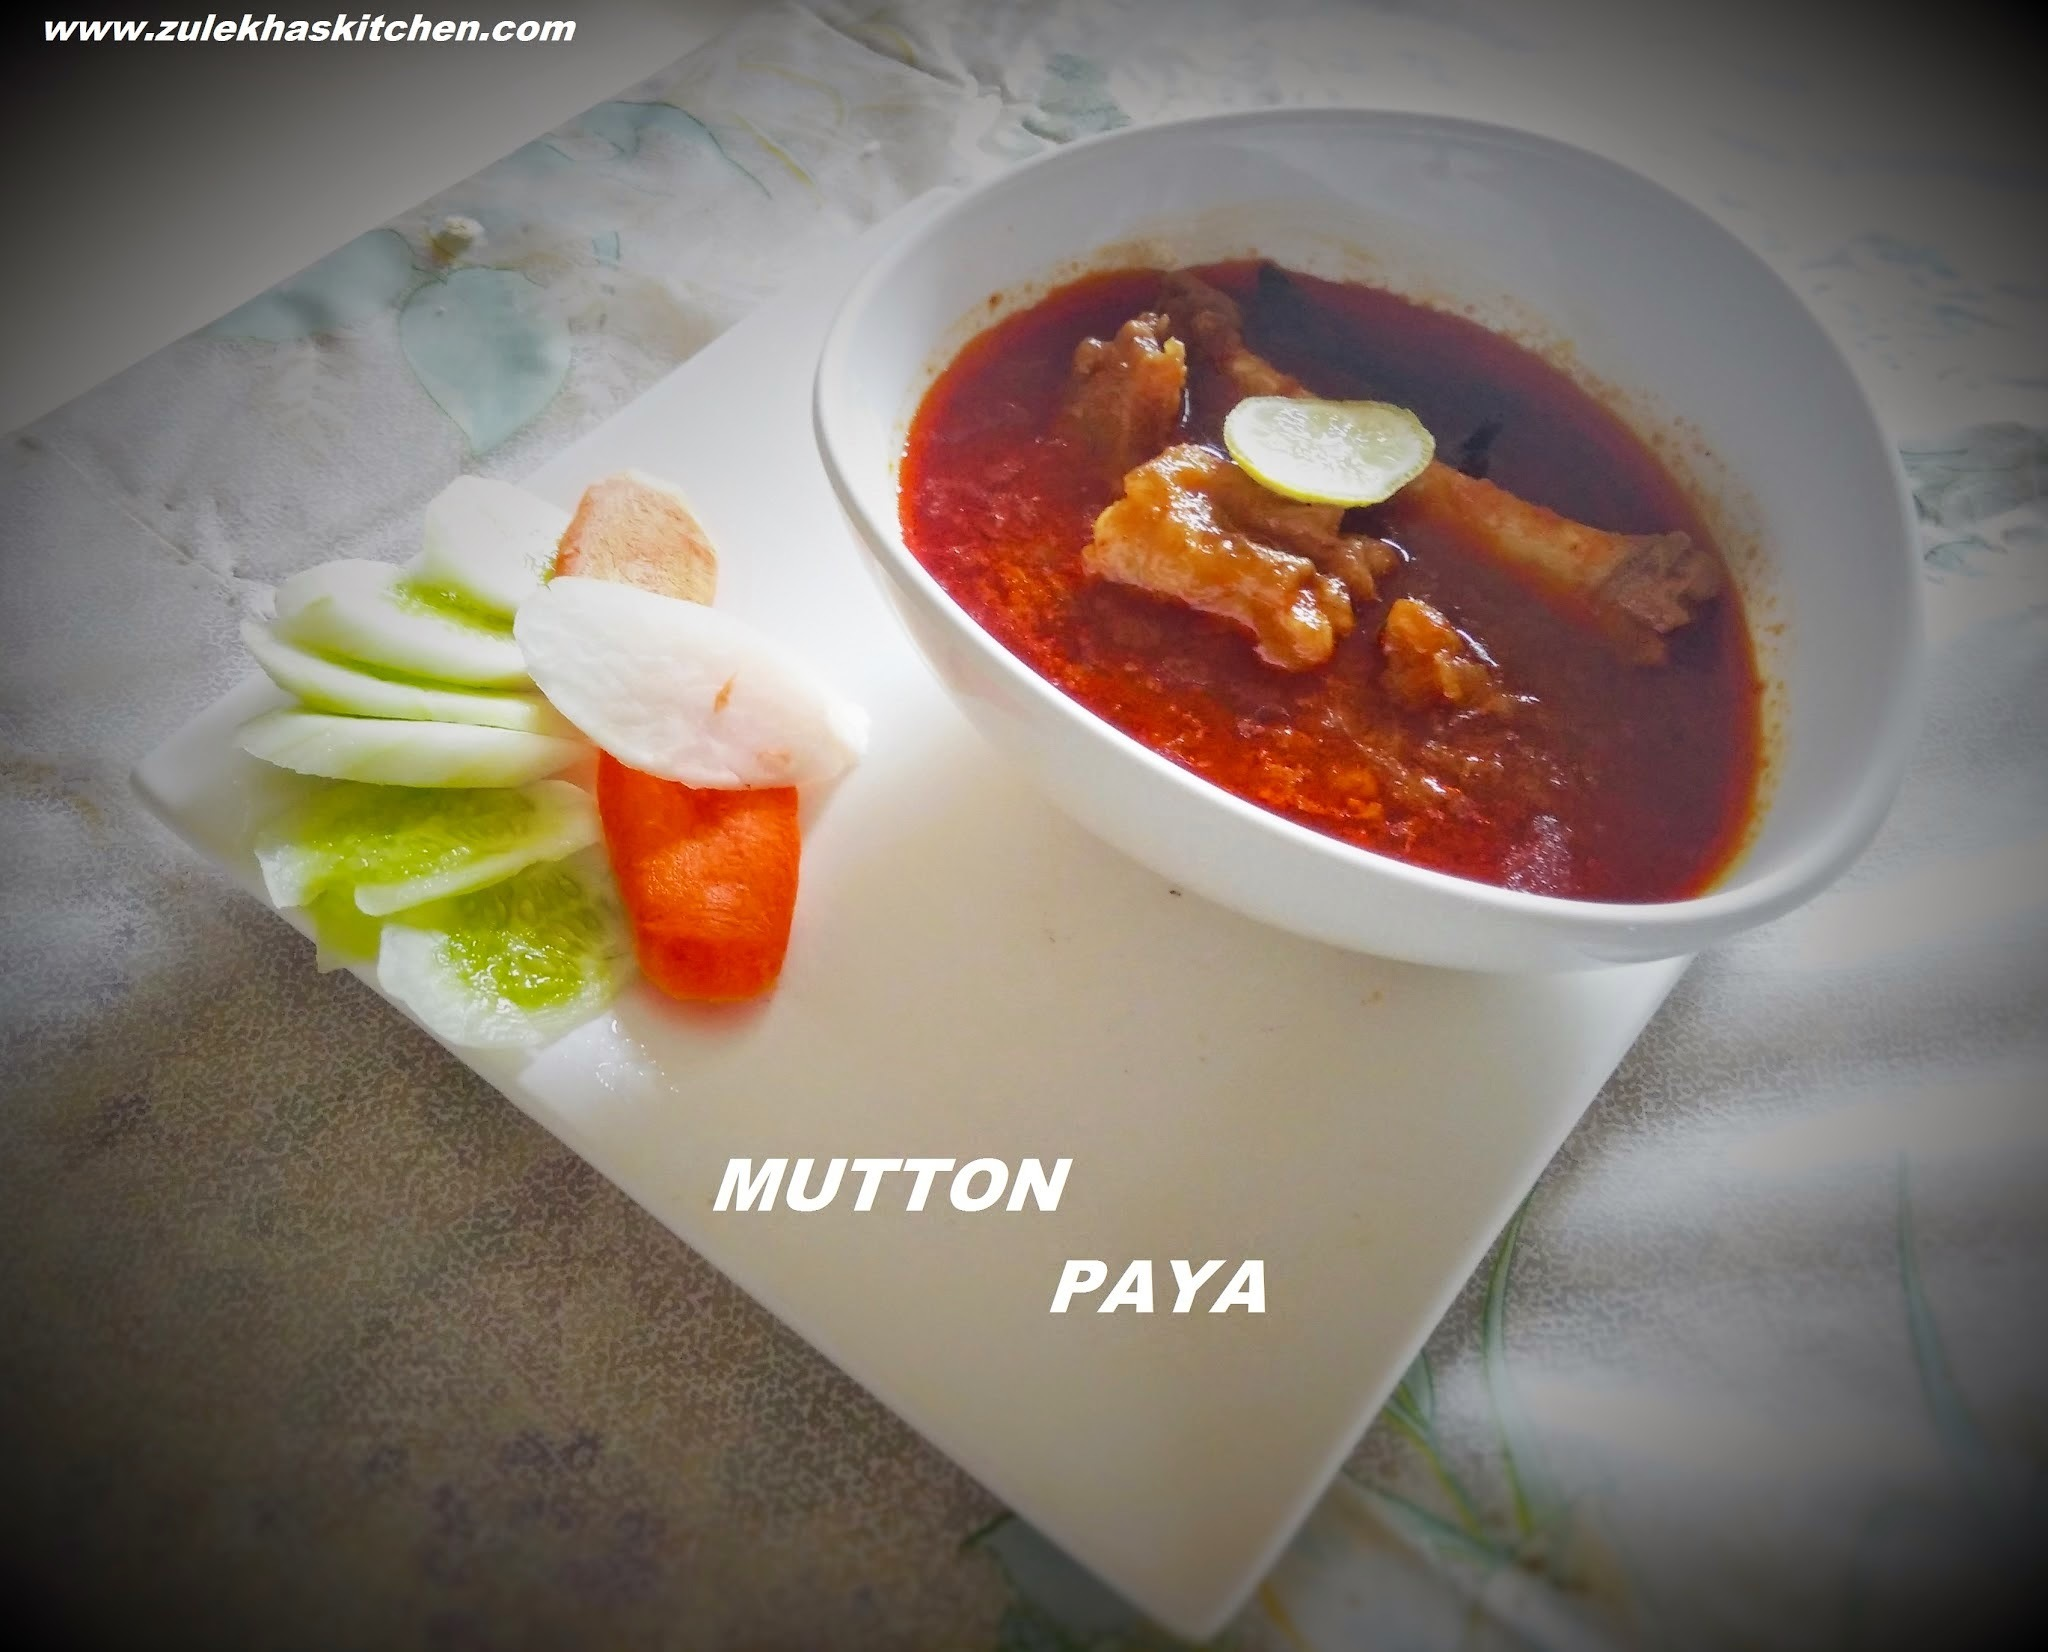 Mutton Paya | Paya soup | Mutton Paya Curry | Mutton Trotters